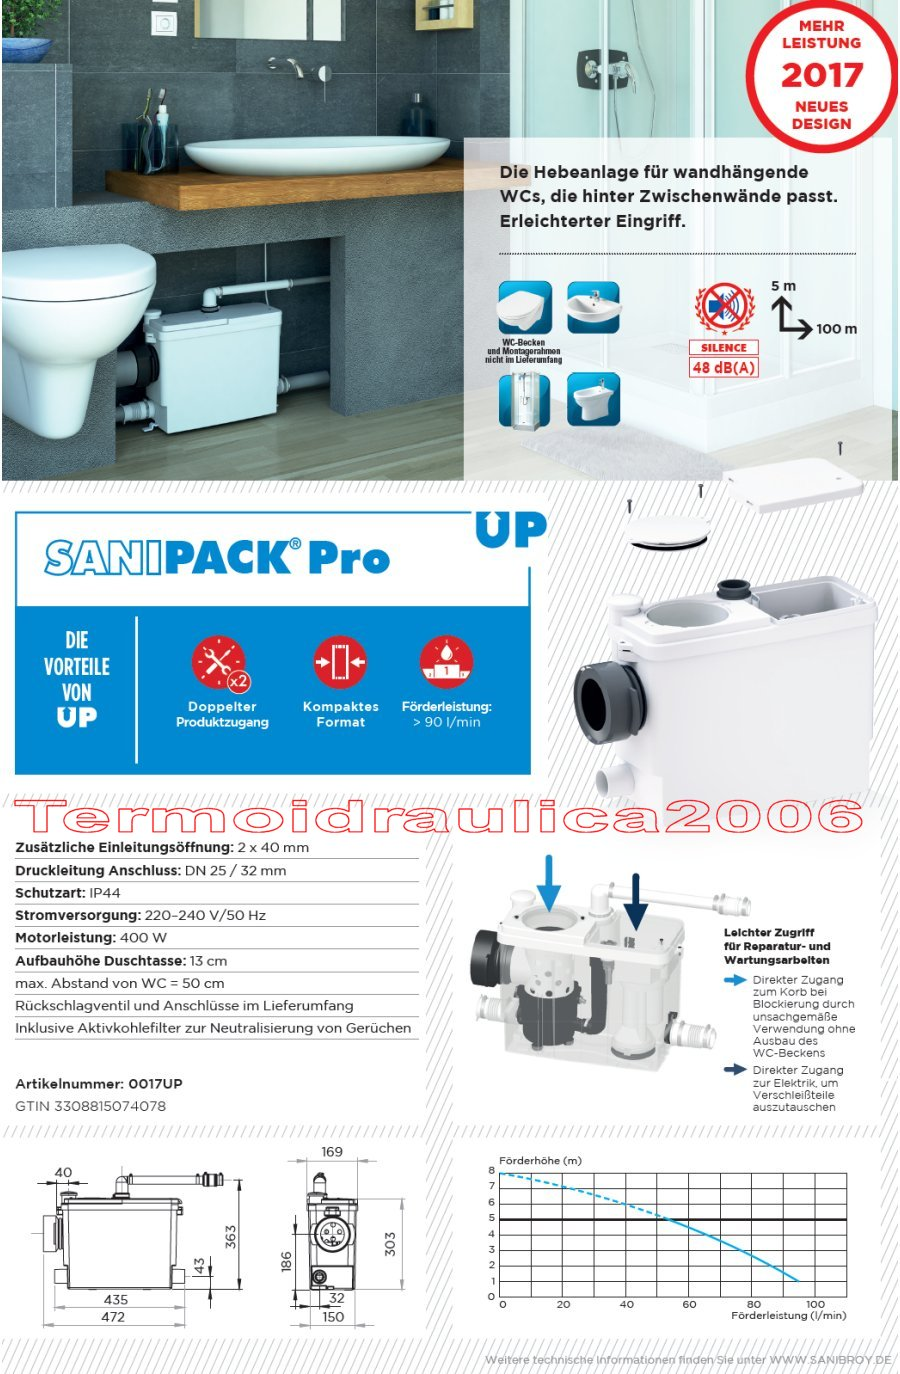 sfa sanibroy sanipack pro up wc hebeanlage abwasserhebeanlage ebay. Black Bedroom Furniture Sets. Home Design Ideas